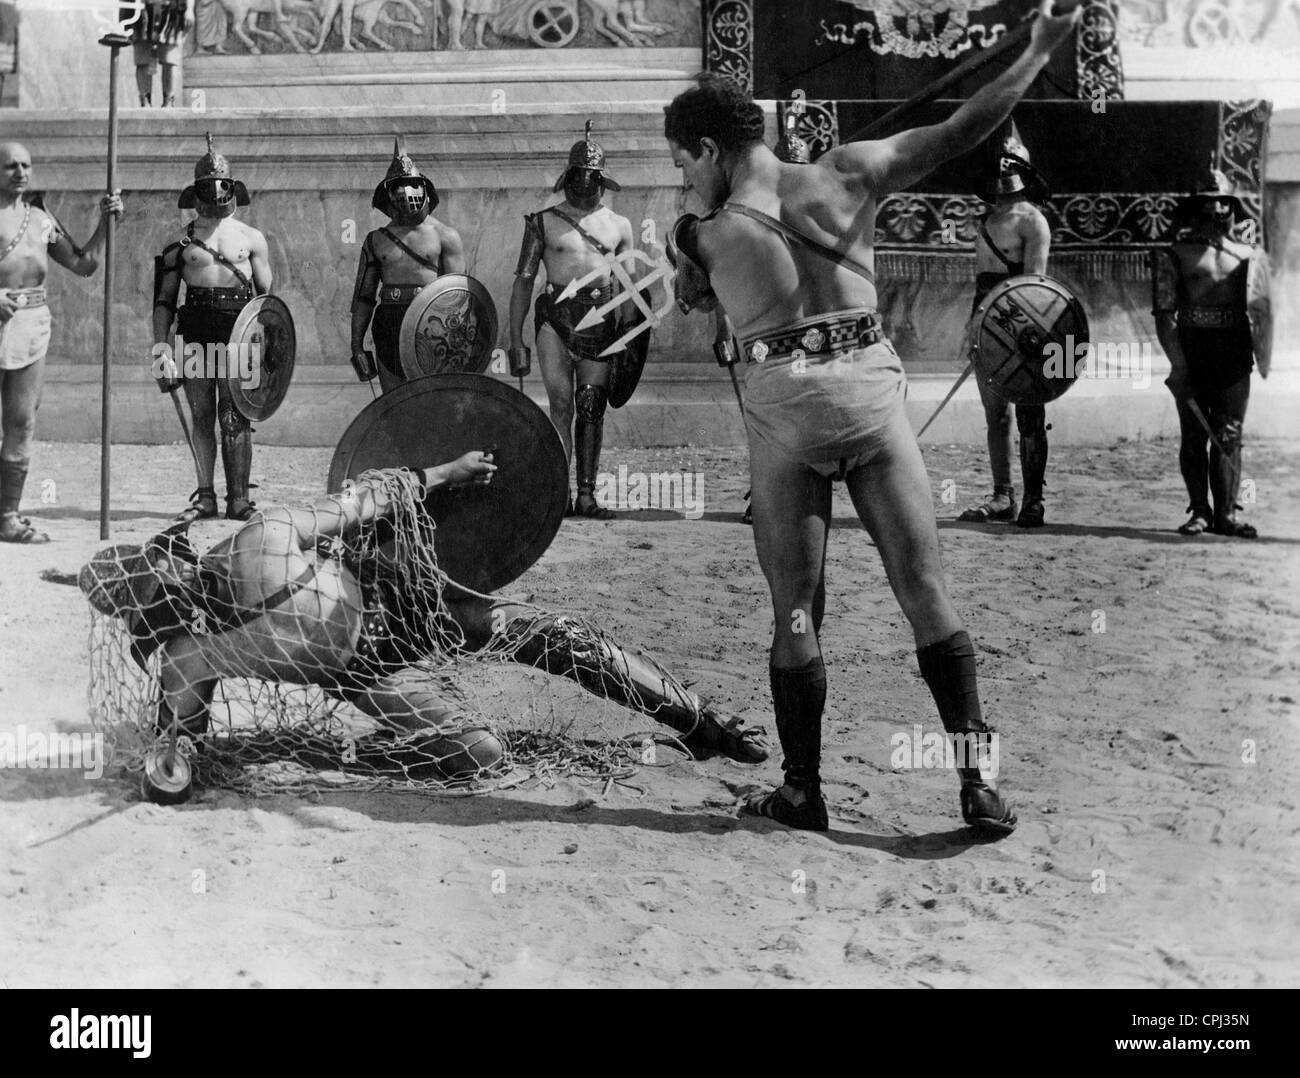 Gladiator fight in ancient Rome - Stock Image